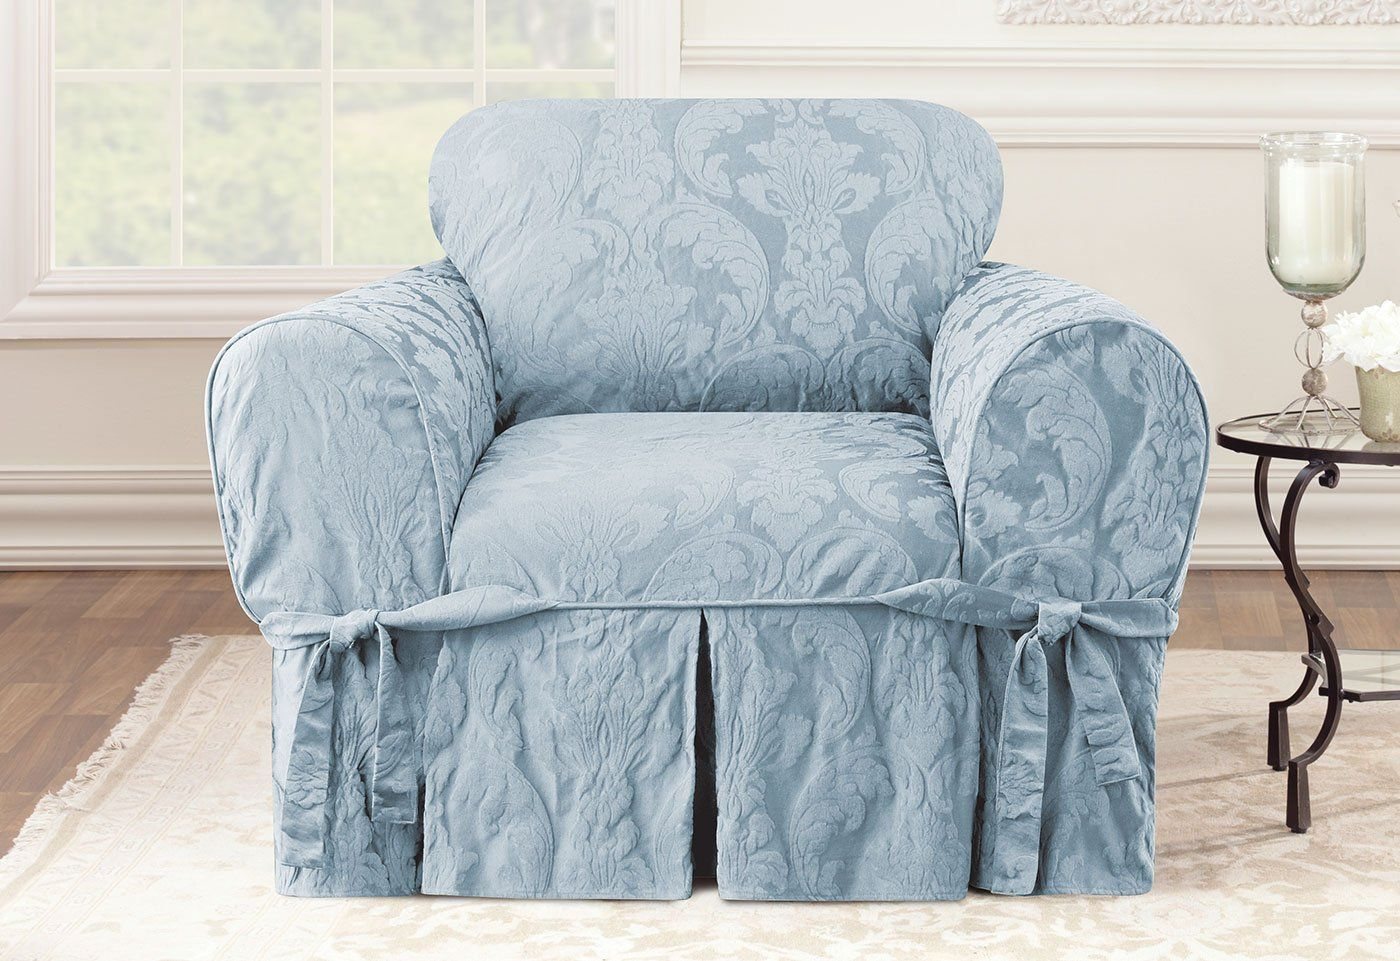 Matelasse damask one piece chair slipcover relaxed fit